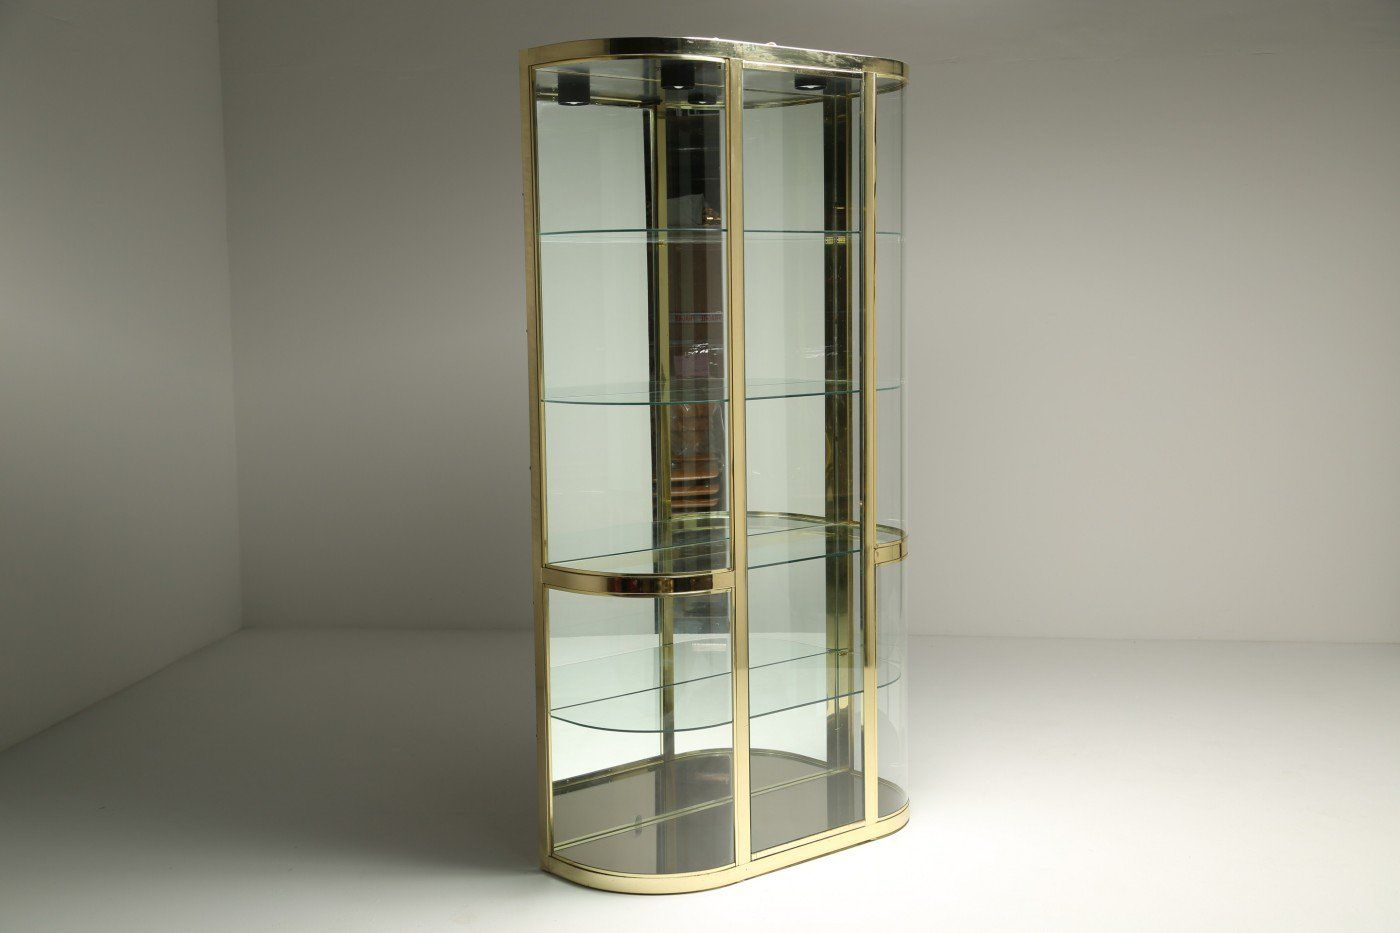 brass and glass vitrine by design institute of america for sale at pamono. Black Bedroom Furniture Sets. Home Design Ideas